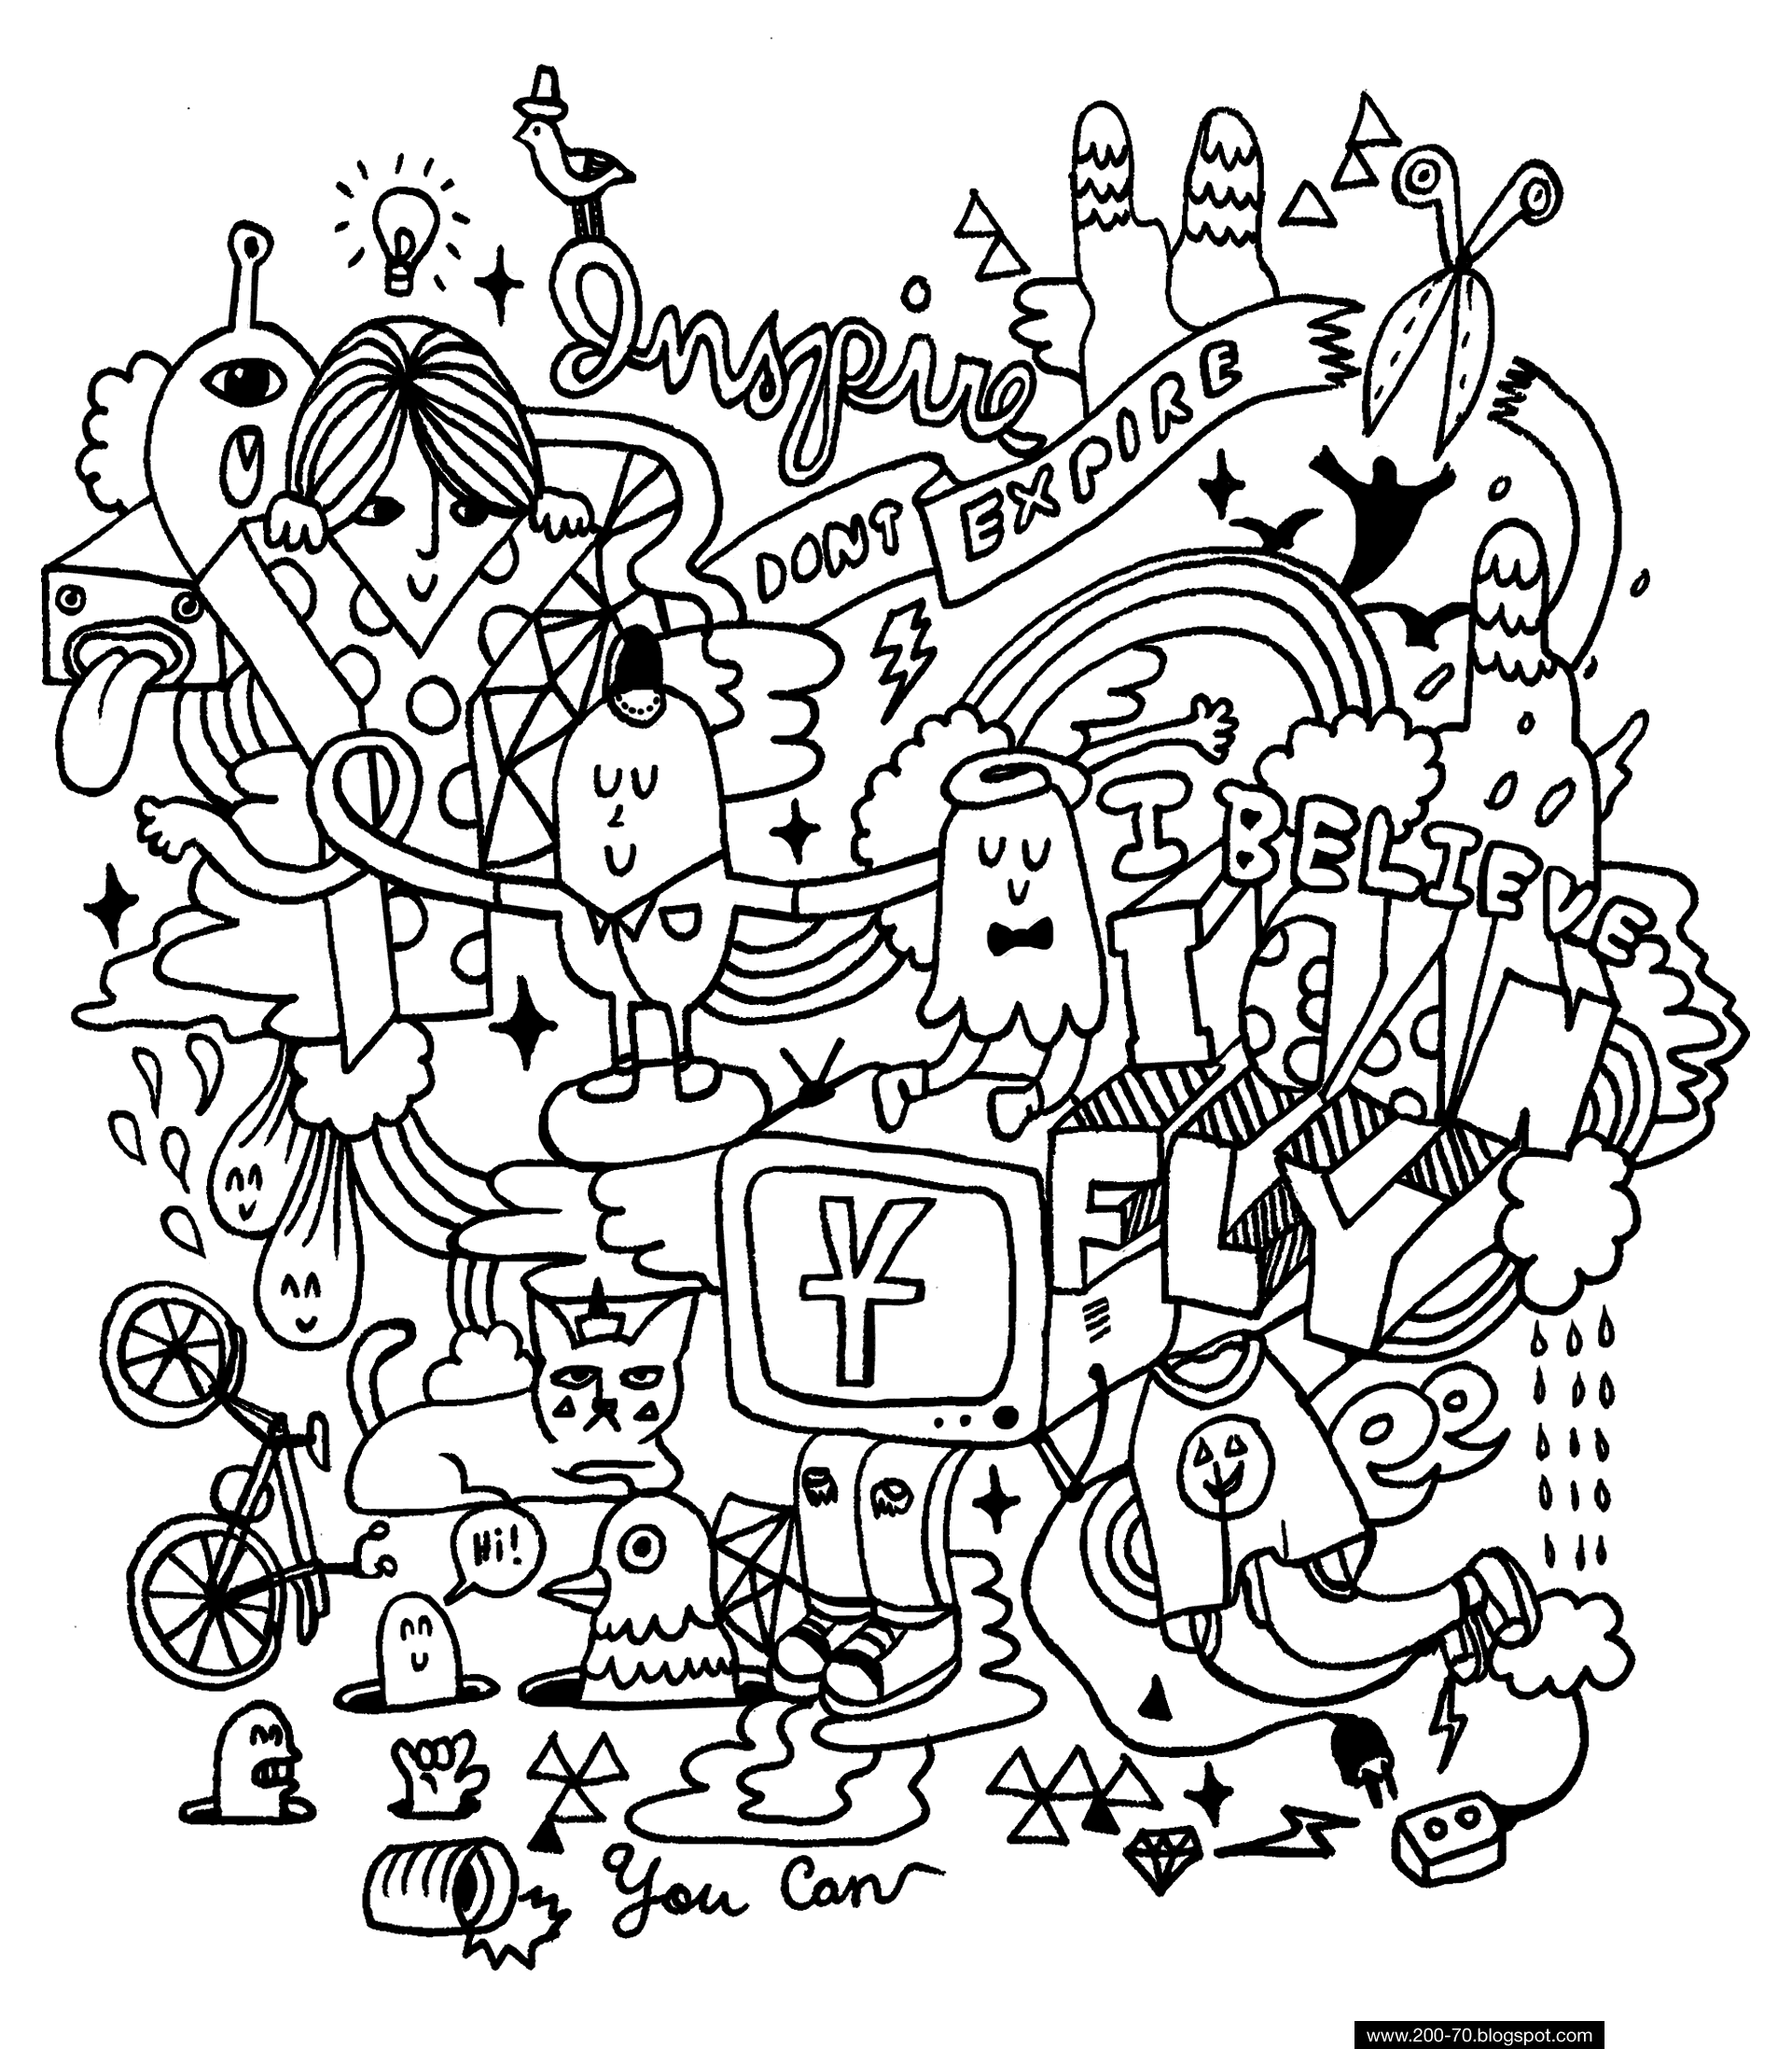 Adult Coloring Pages: Fun Coloring For Kids And Adults, A Rainy Day Delight